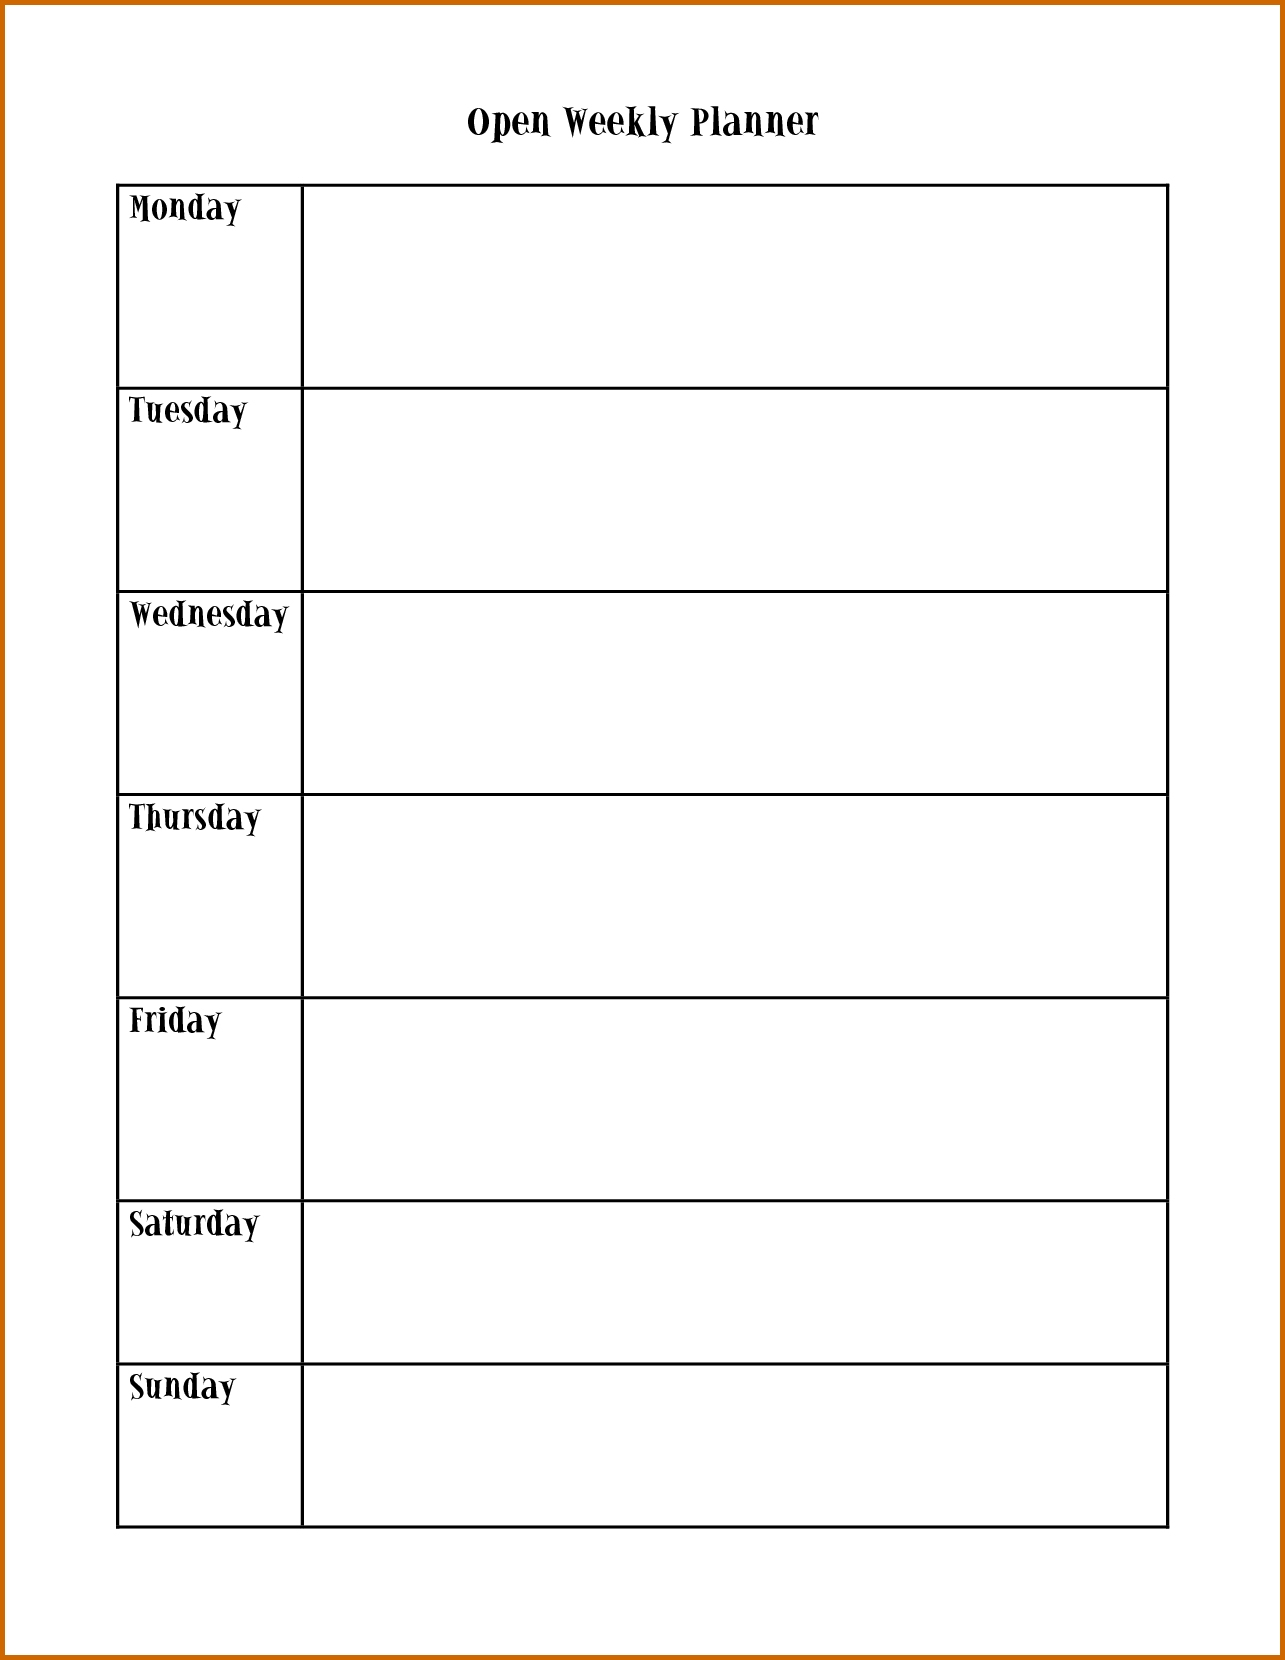 Monday To Friday Weekly Planner - Calendar Inspiration Design Free Printable Mondat Through Friday Weekly Calendar